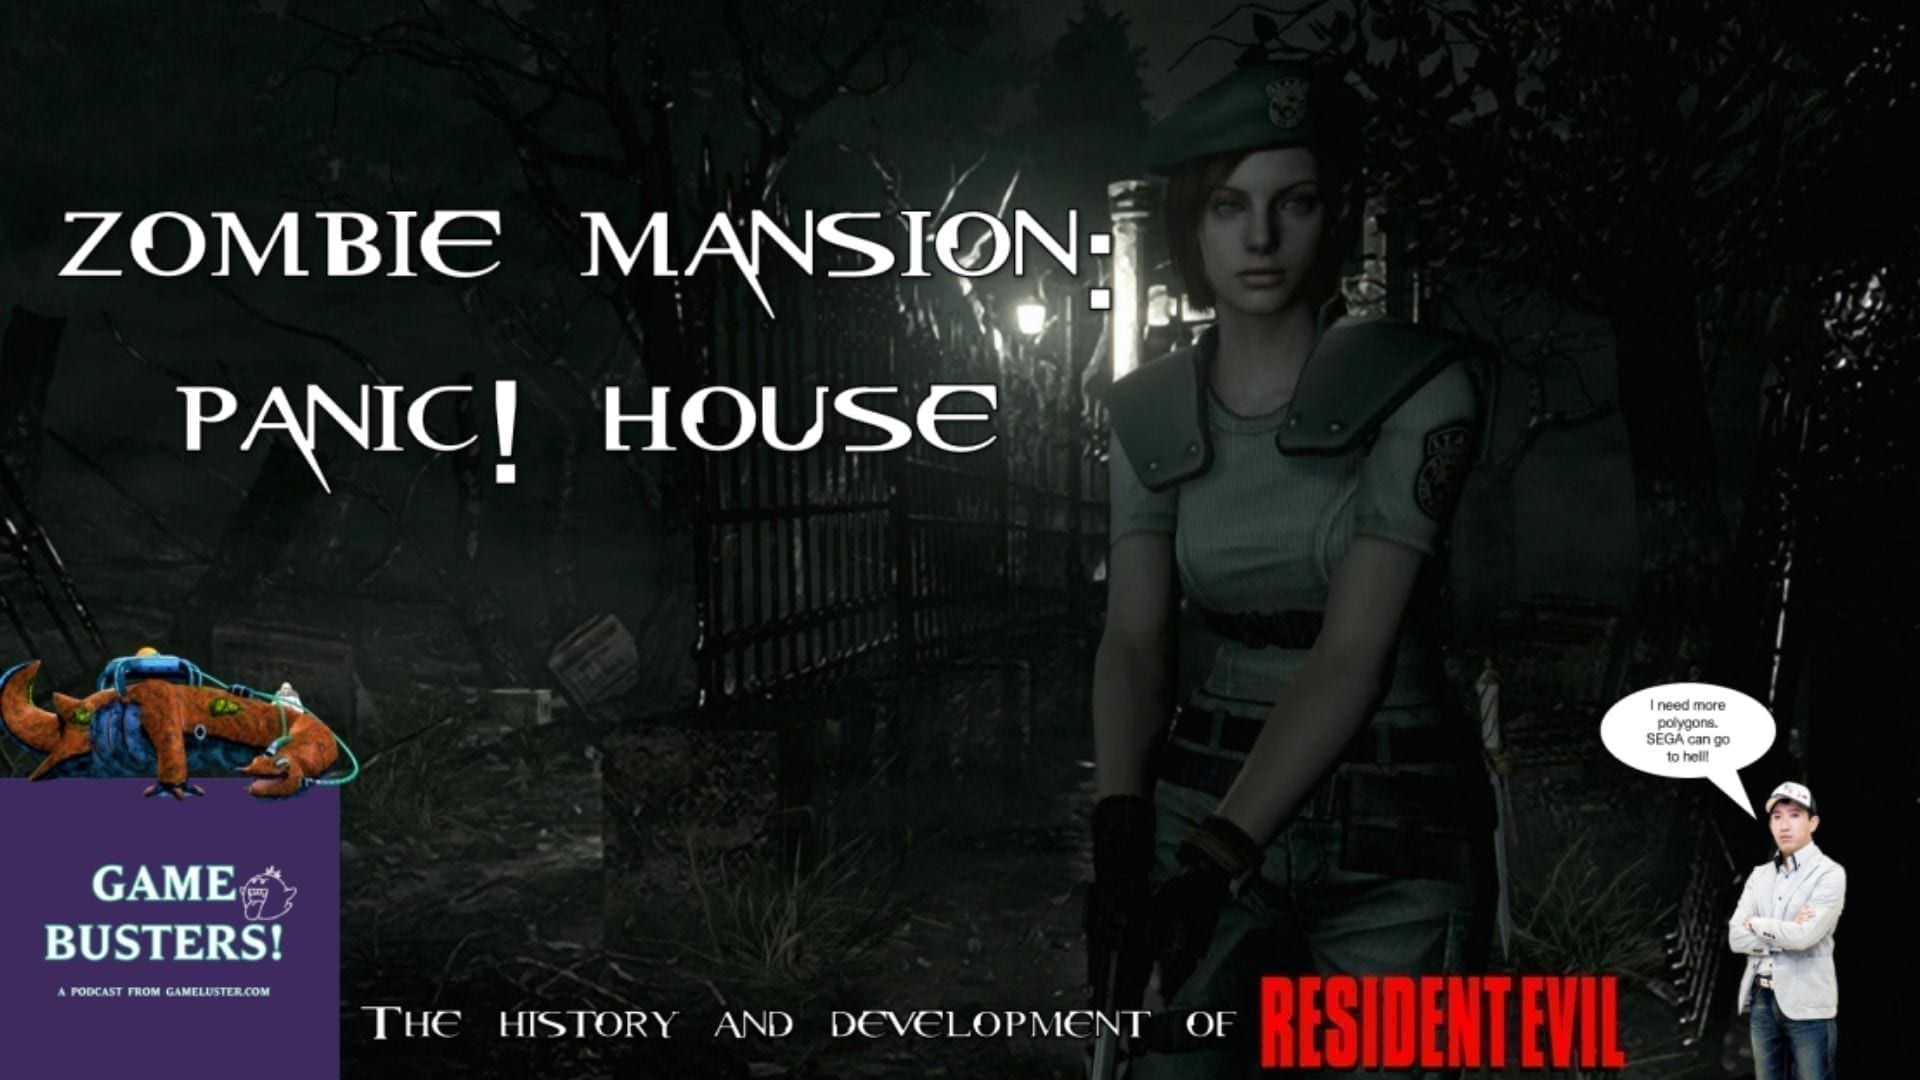 Resident Evil Game Busters